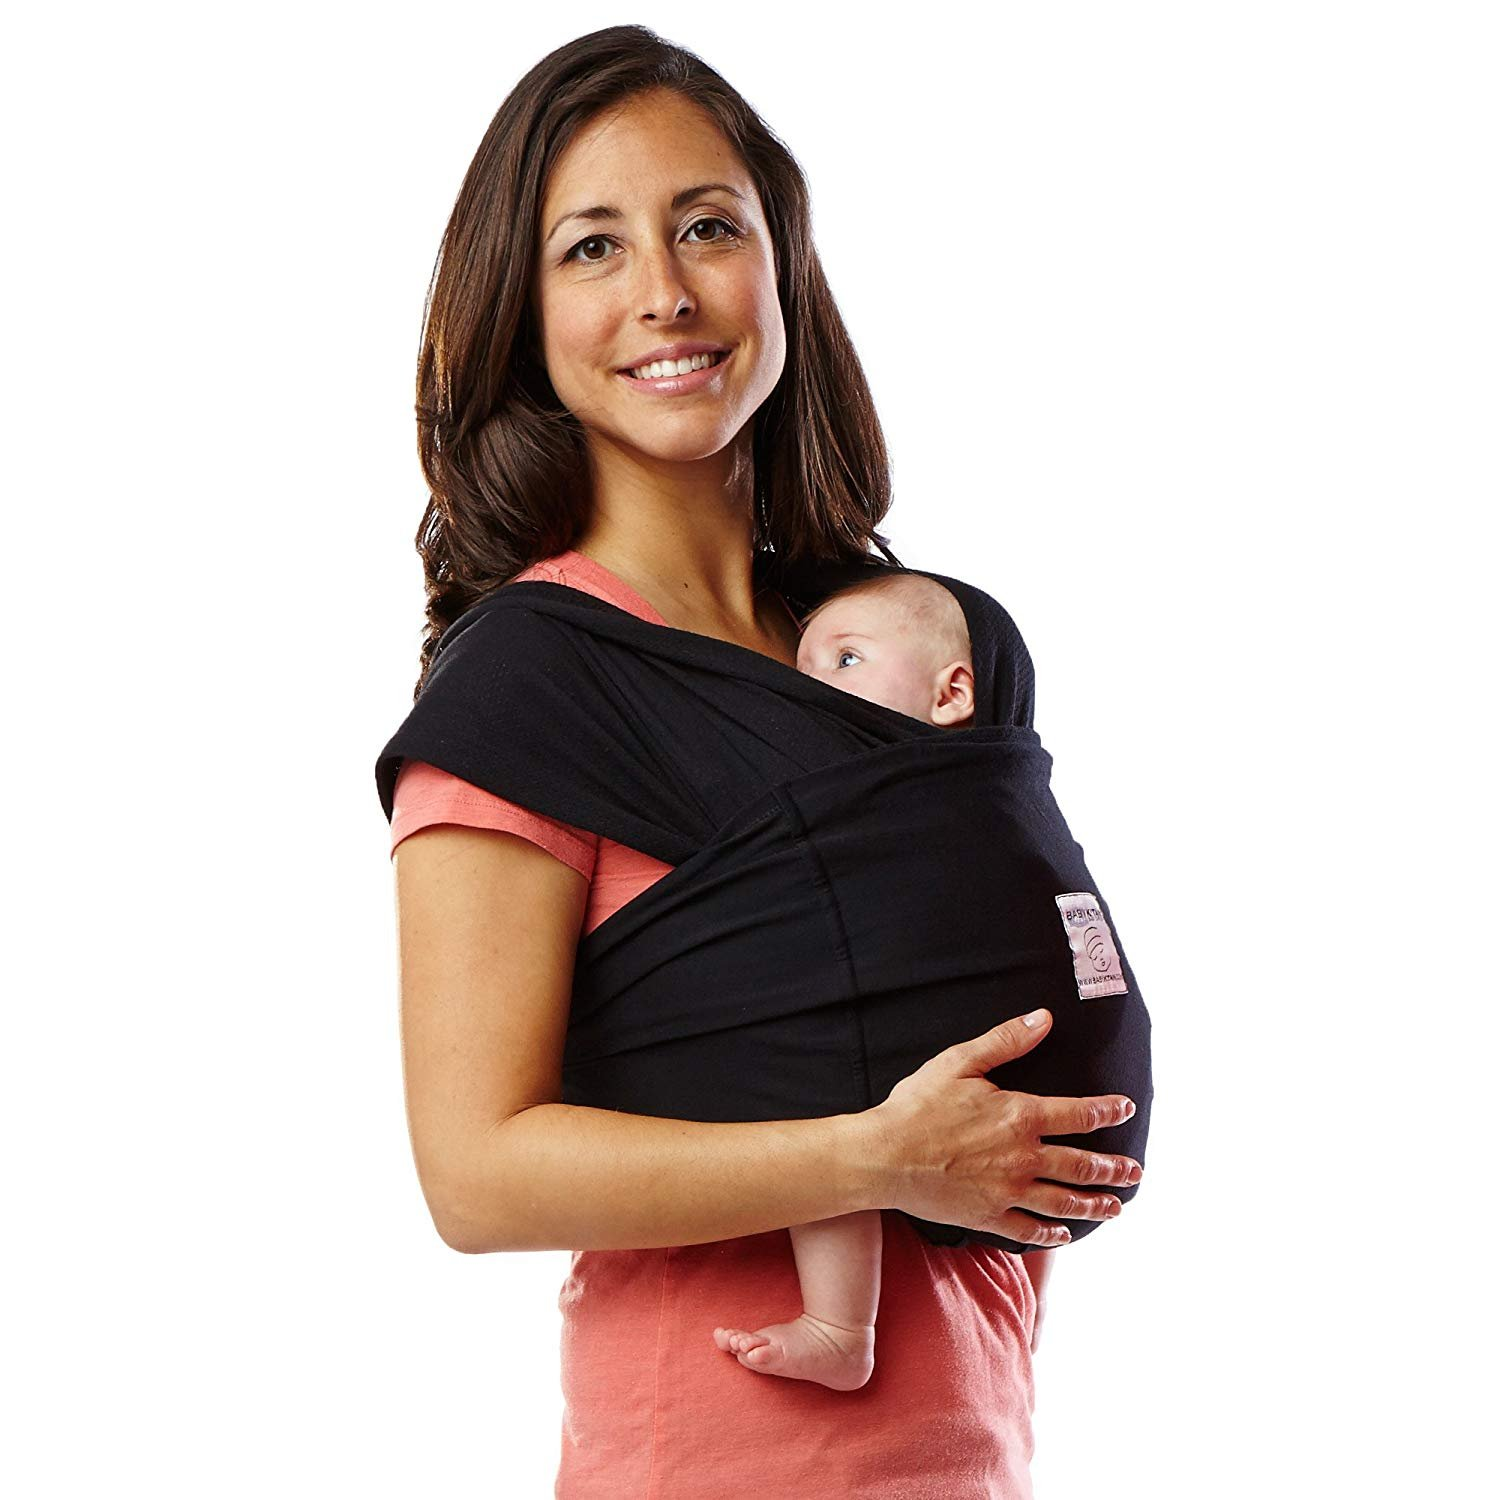 819d93a4fe5 This baby carrier has all the benefits of a full wrap with the convenience  of a structured baby carrier. The Baby K Tan is perfect for tiny newborns